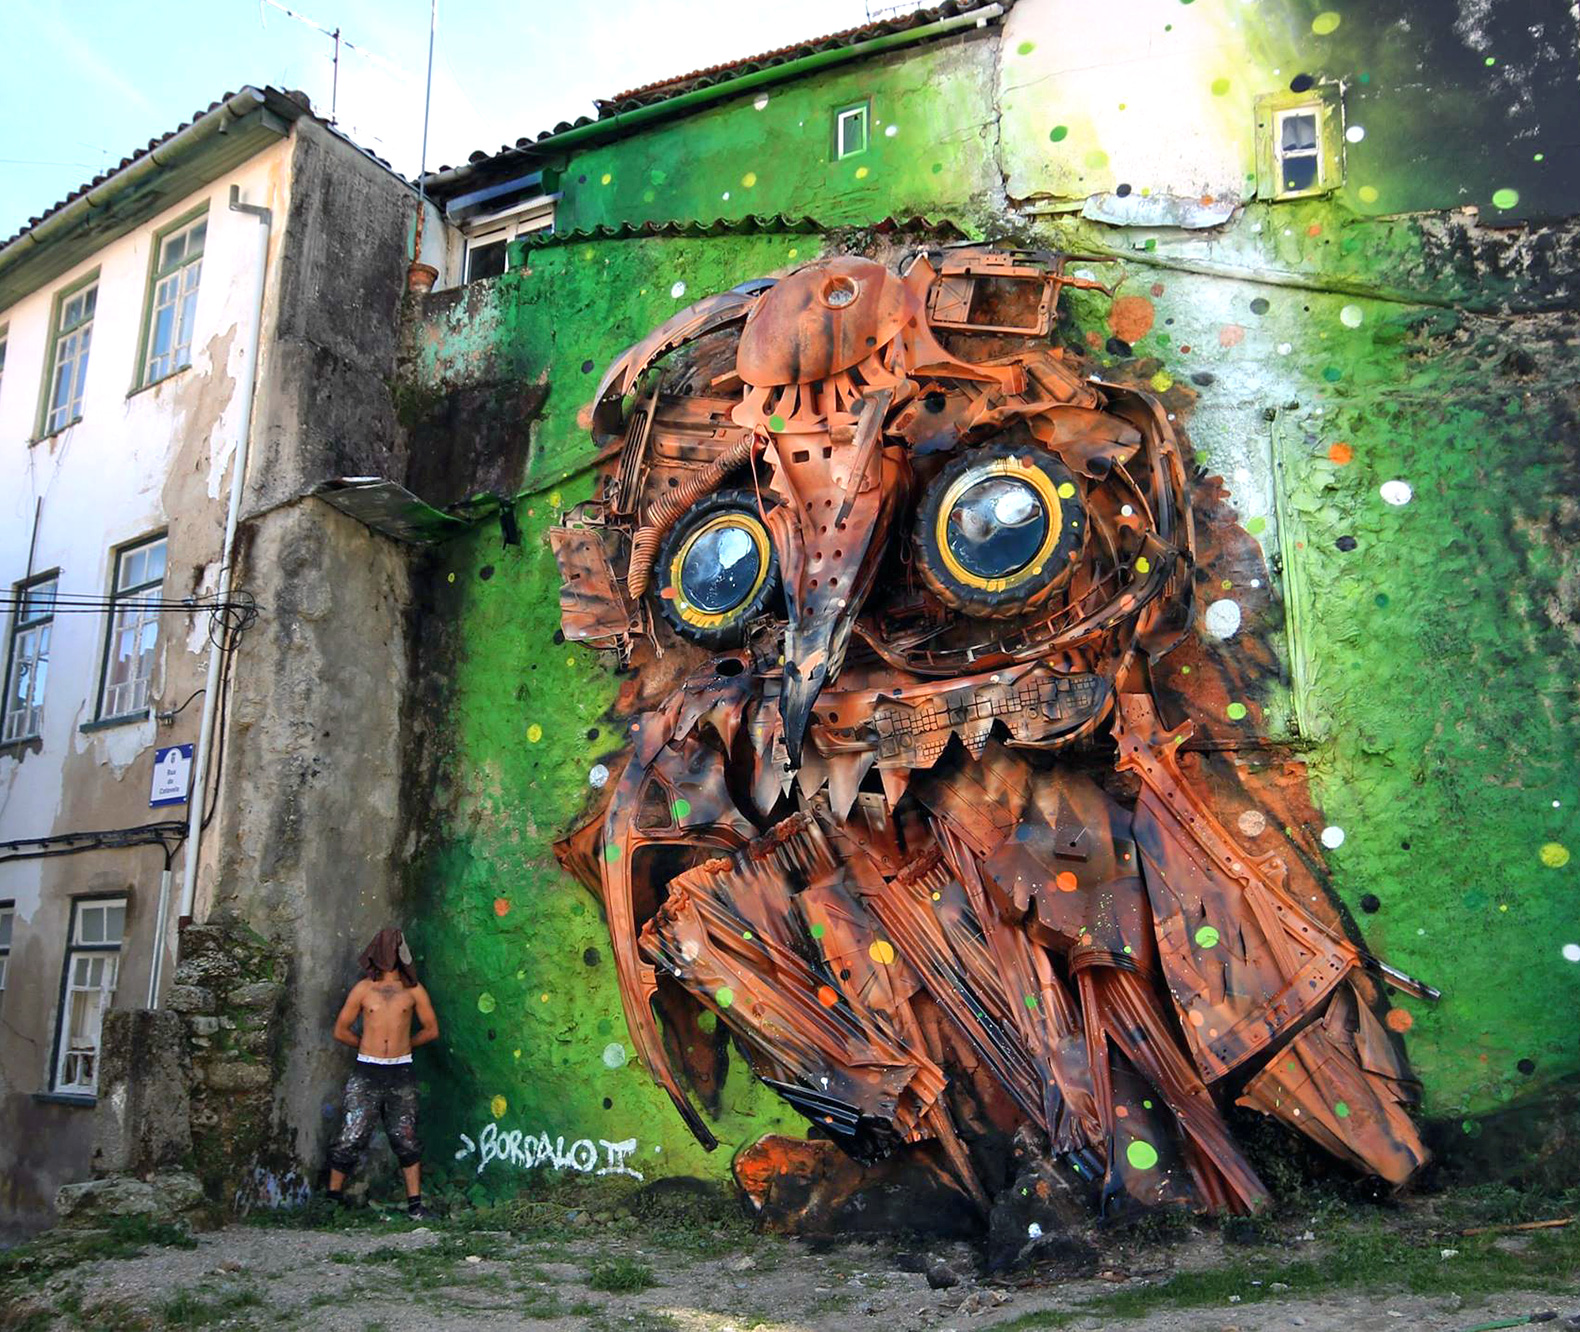 Street artist turns trash into incredible wild animal sculptures